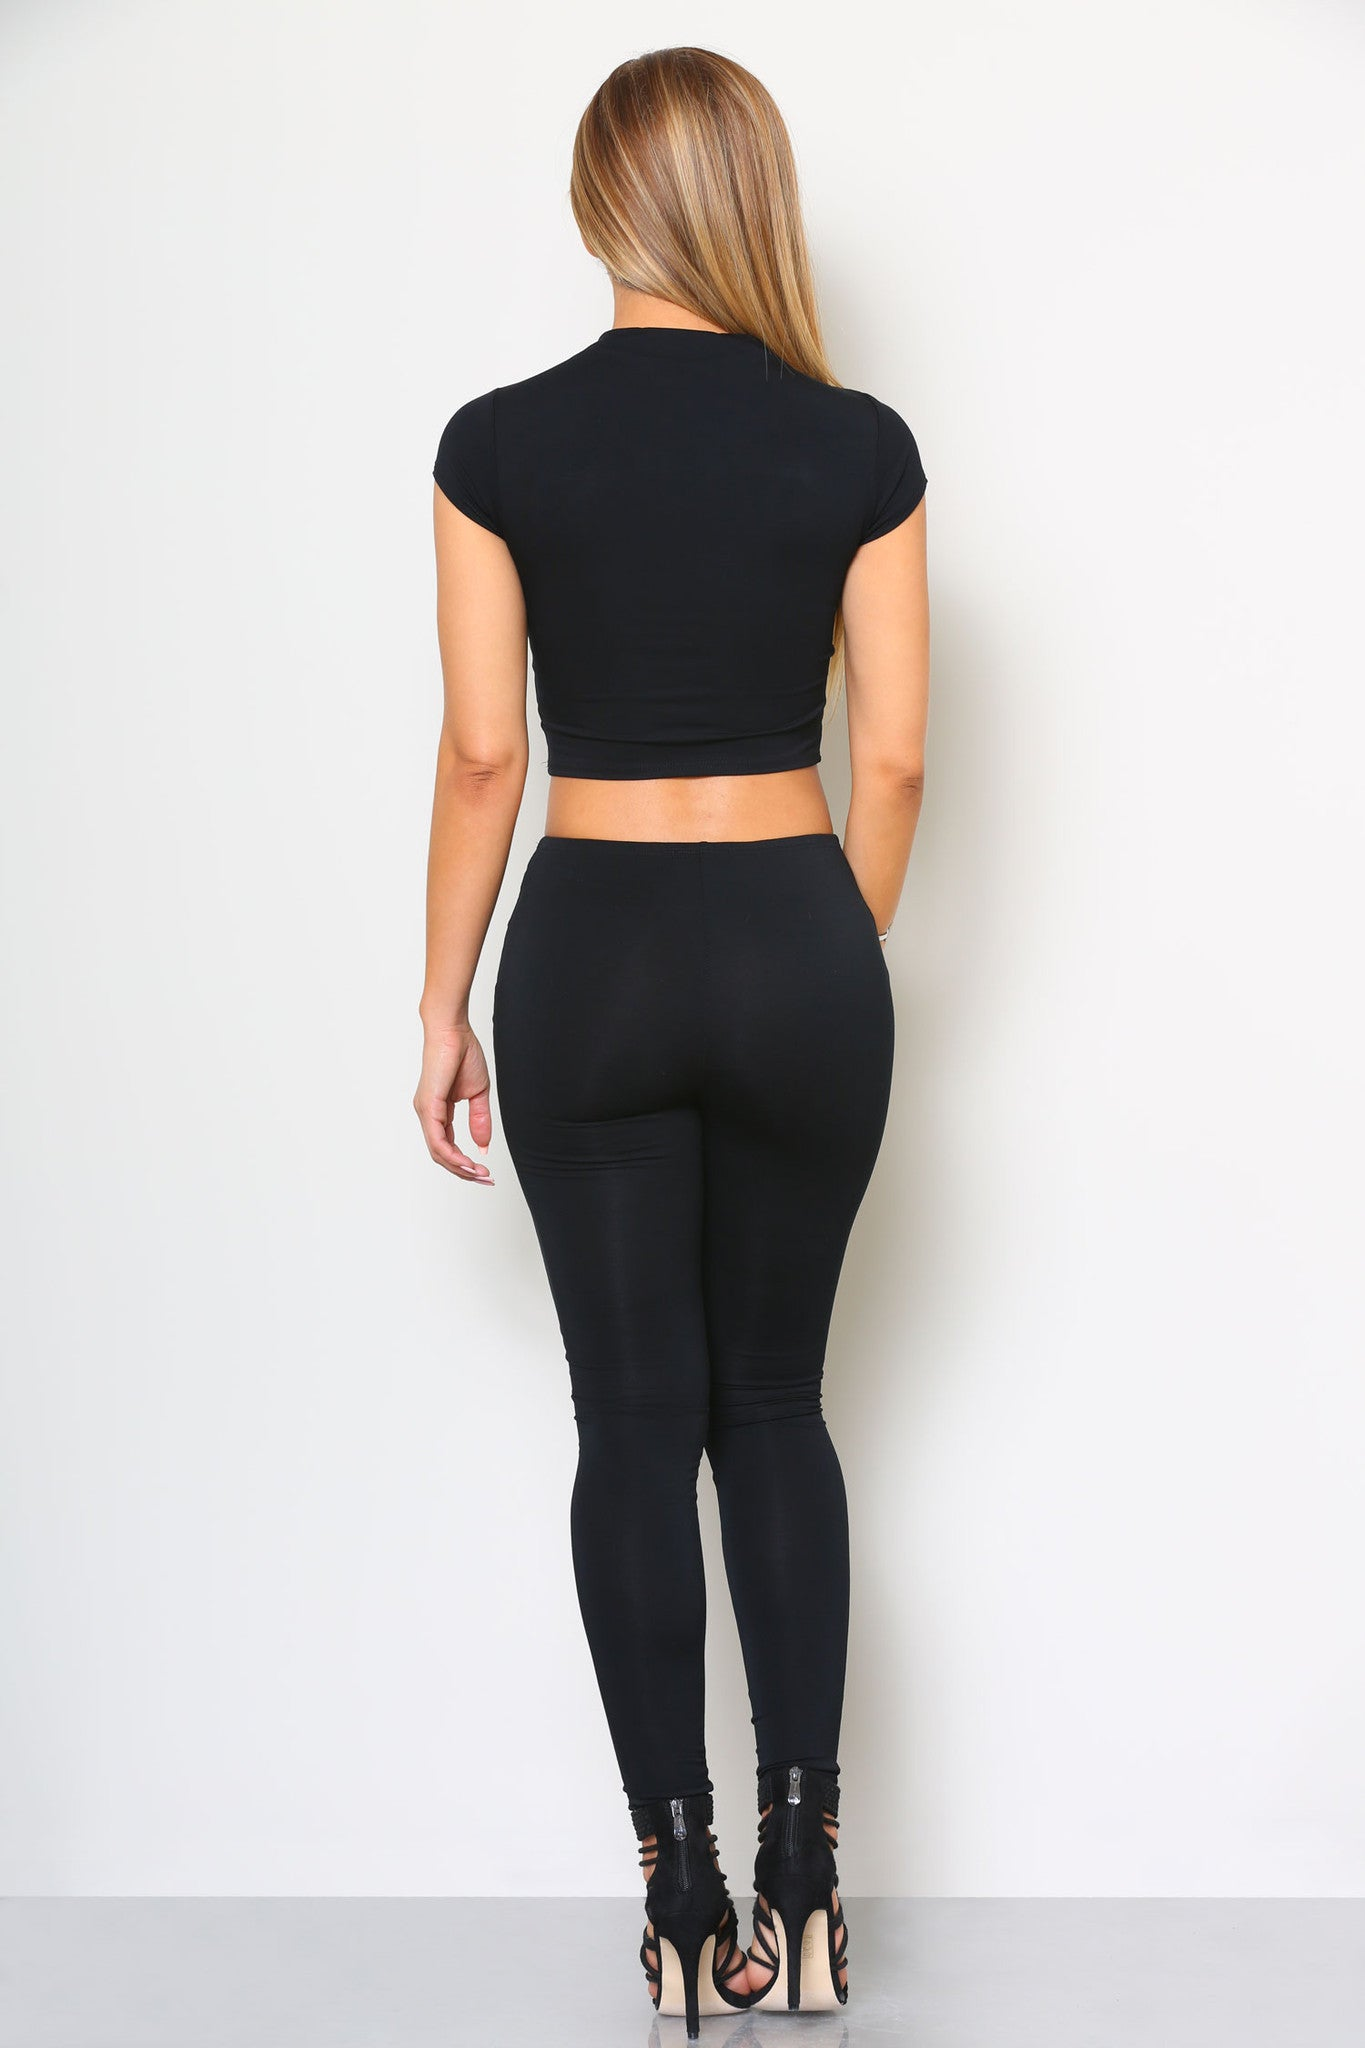 ERIKA CROP TOP AND LEGGINGS SET (SOLD SEPARATELY) - Glam Envy - 3